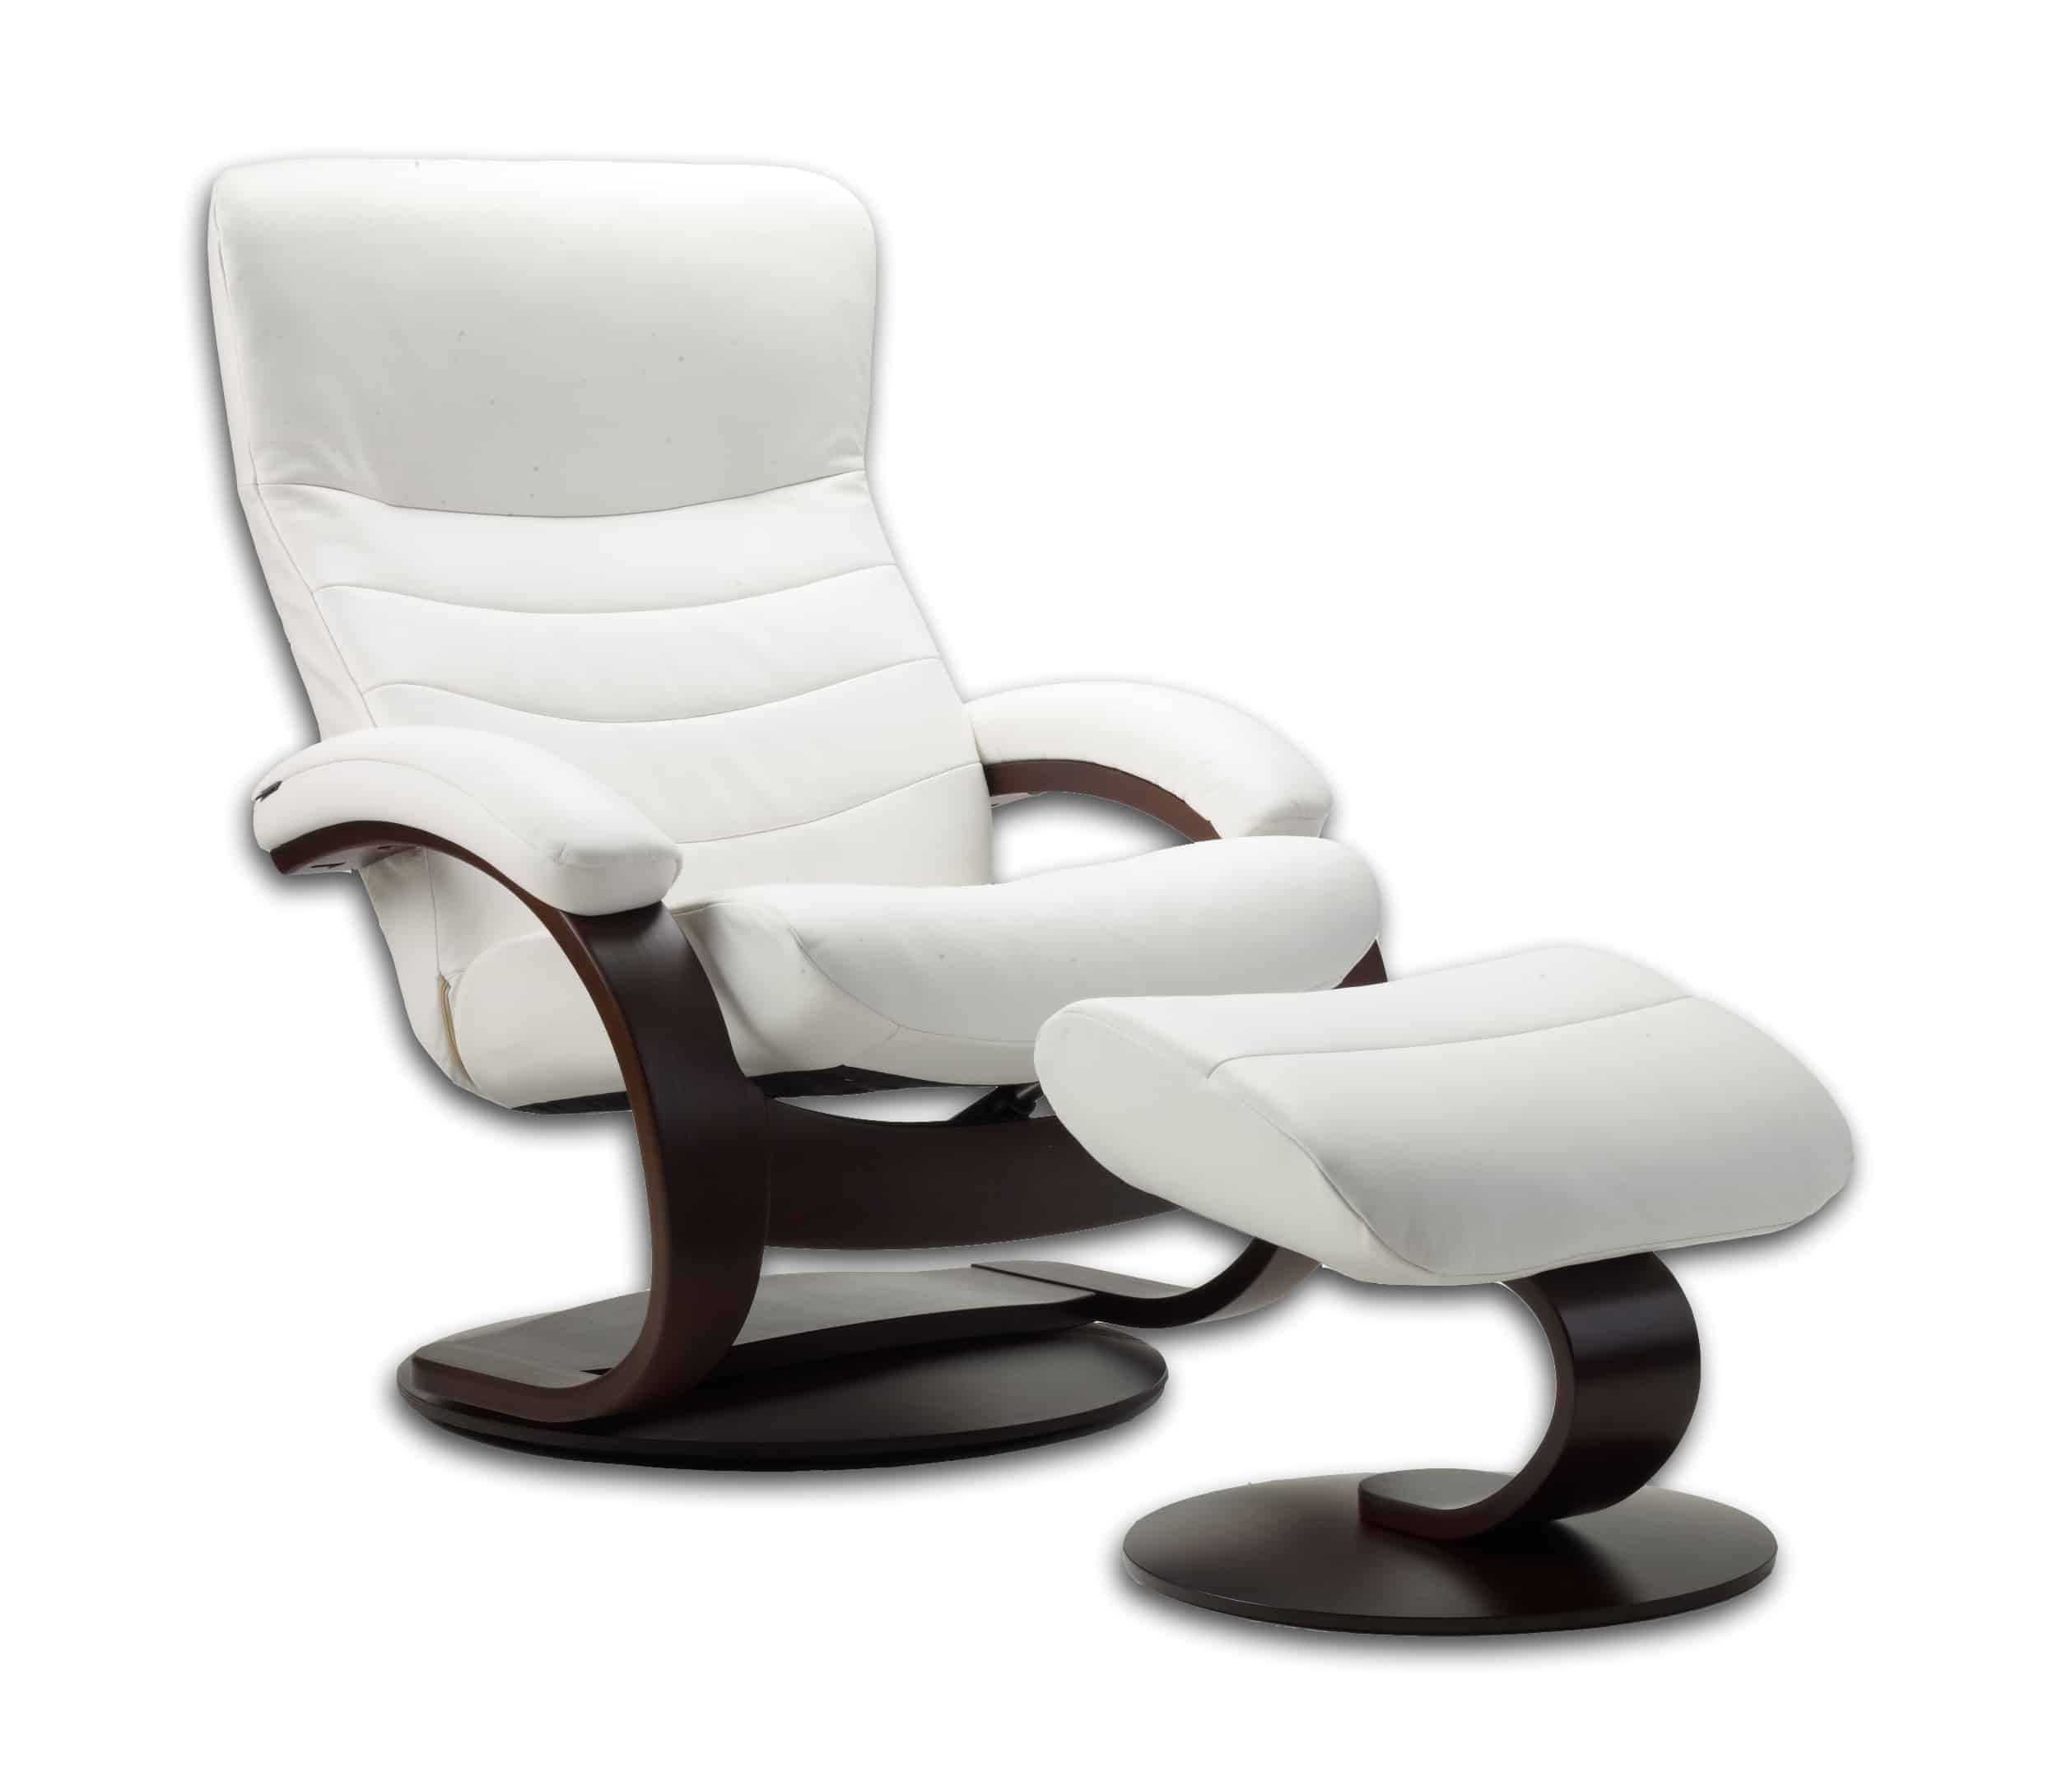 Fjords Trandal Recliner - White  sc 1 st  Chair Land Furniture & Fjords Trandal Recliner | Chair Land Furniture islam-shia.org